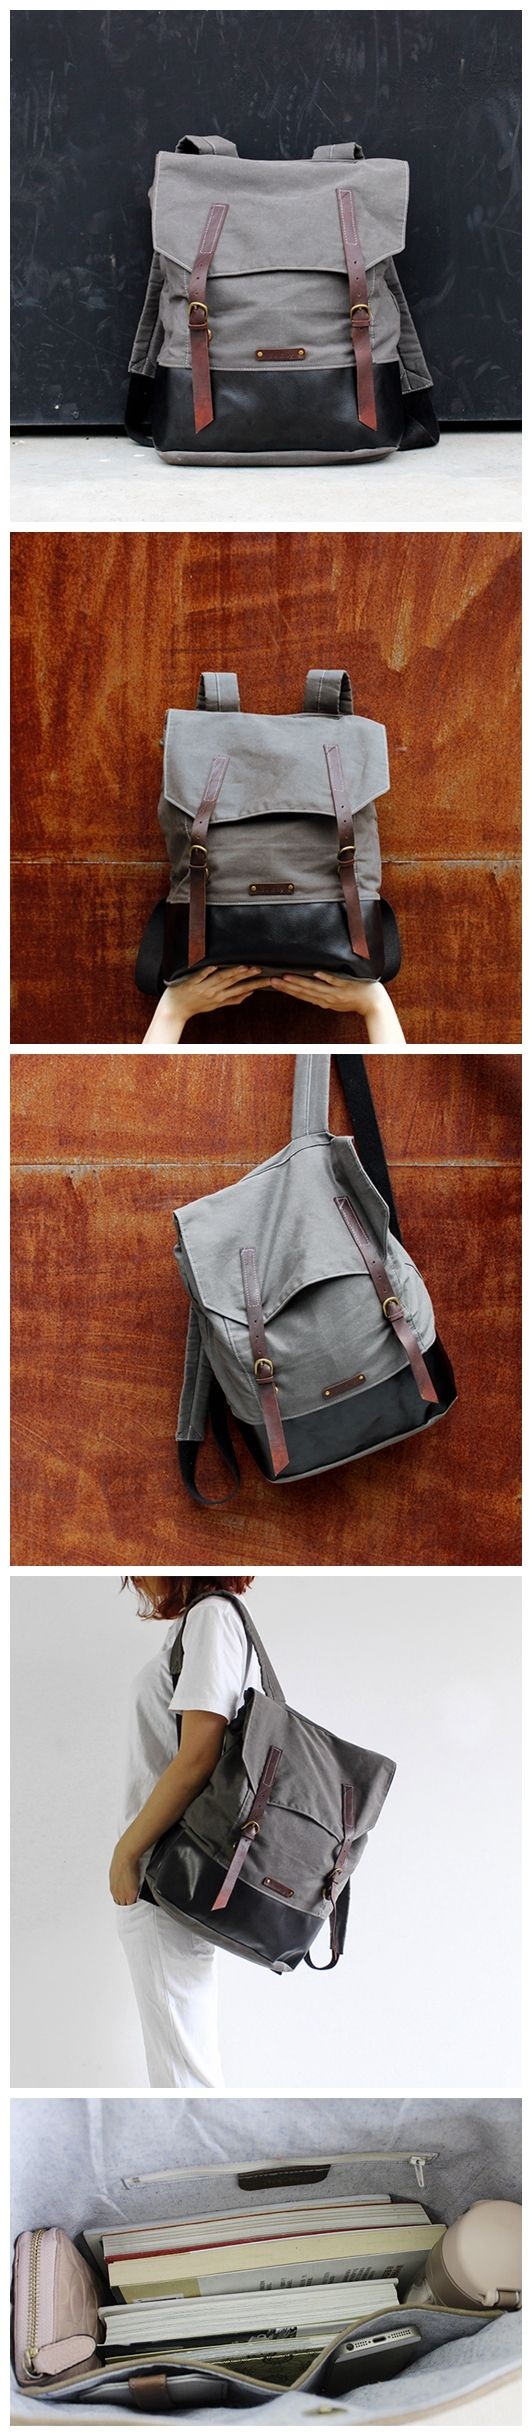 Handmade Waxed Canvas School Backpack Casual Rucksack Travel Backpack Laptop Bag 14057